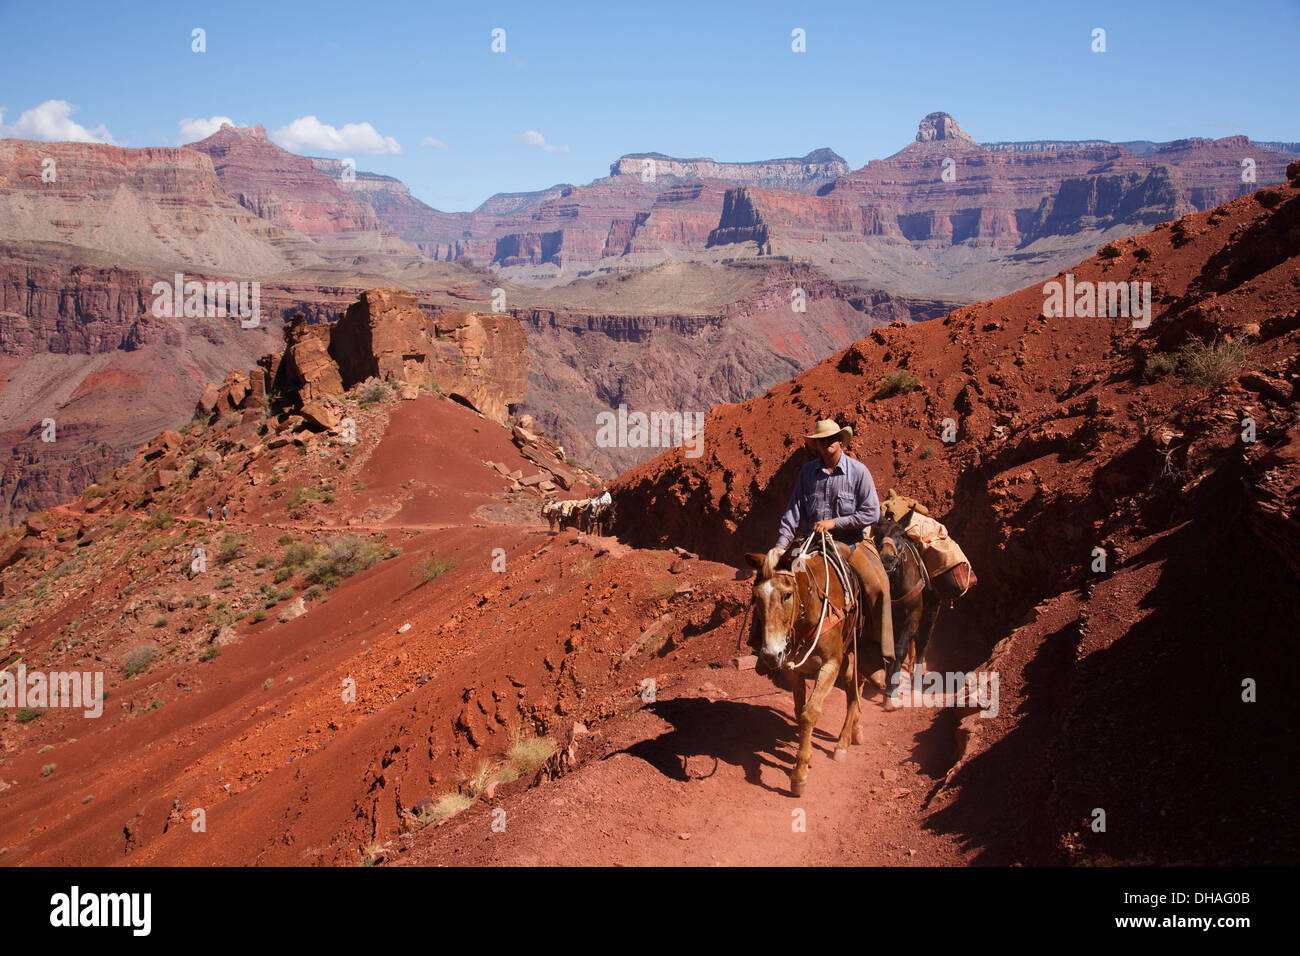 Pack mules on the South Kaibab Trail, Grand Canyon National Park, Arizona. - Stock Image